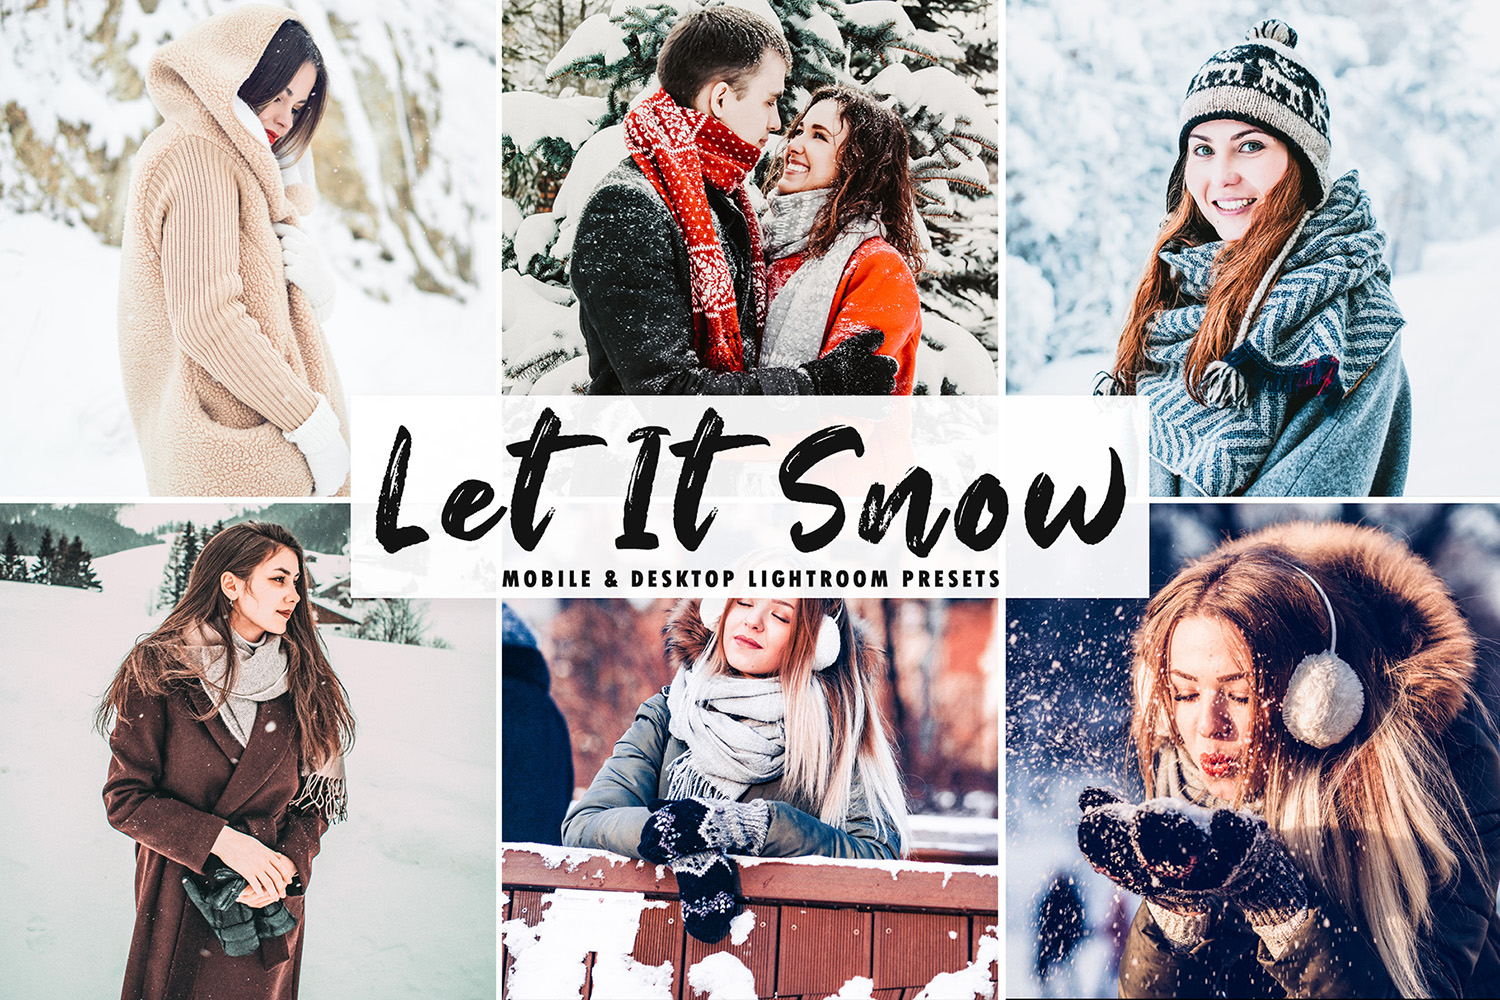 Let It Snow Mobile & Desktop Lightroom Presets example image 1